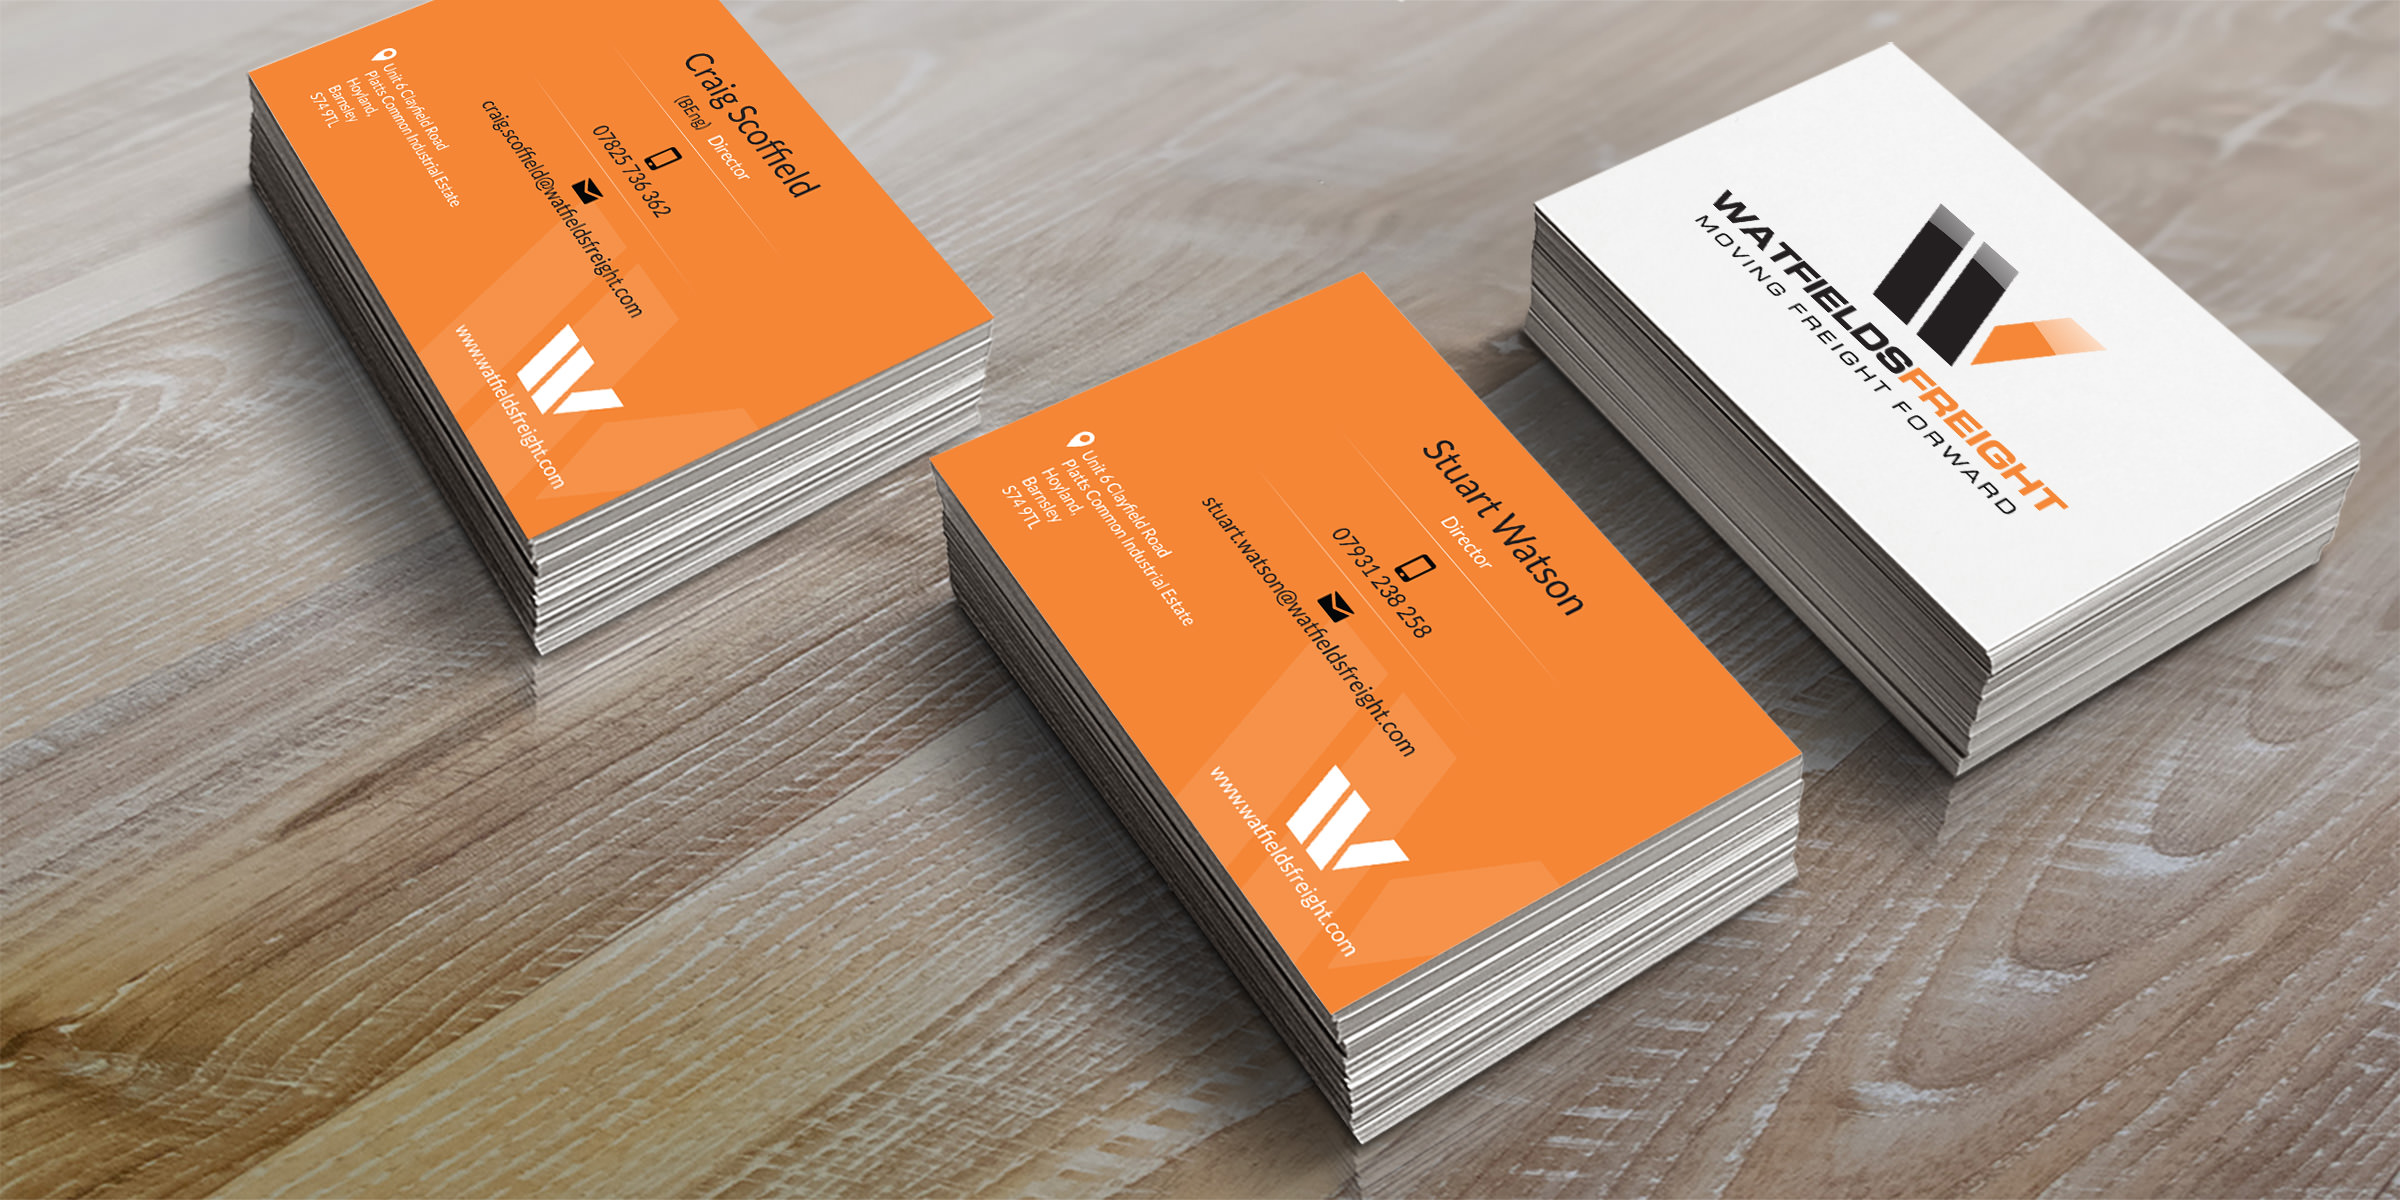 Print design service milton keynes watfields freight design of double sided business cards for two directors watfields freight design of double sided business cards for two directors reheart Images